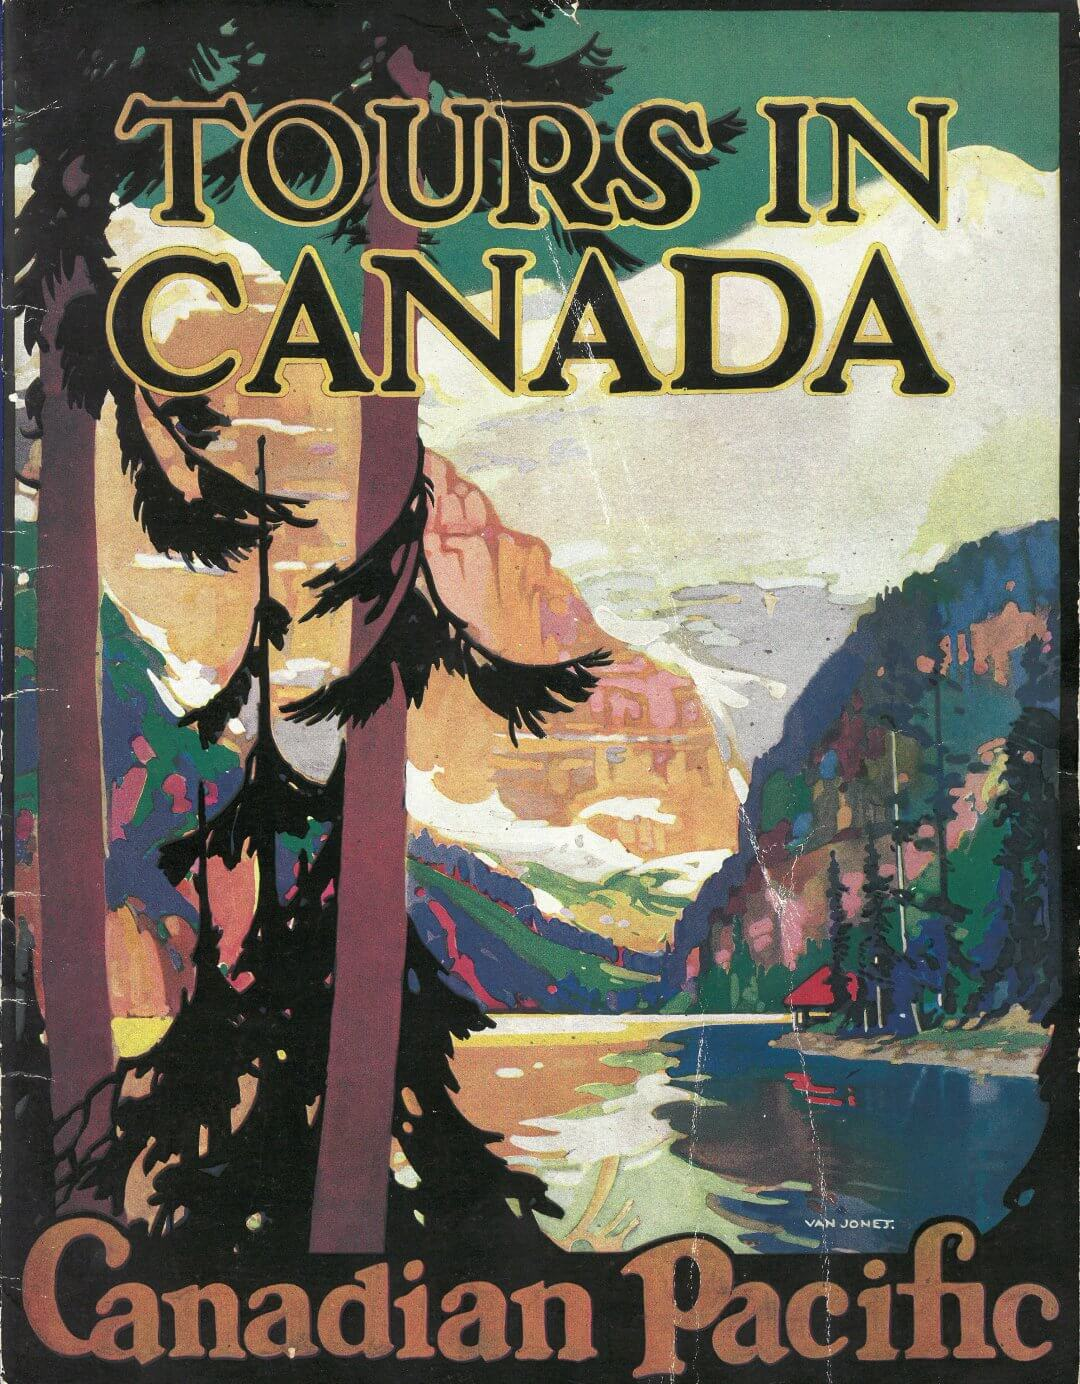 Tours in Canada by Canadian Pacific